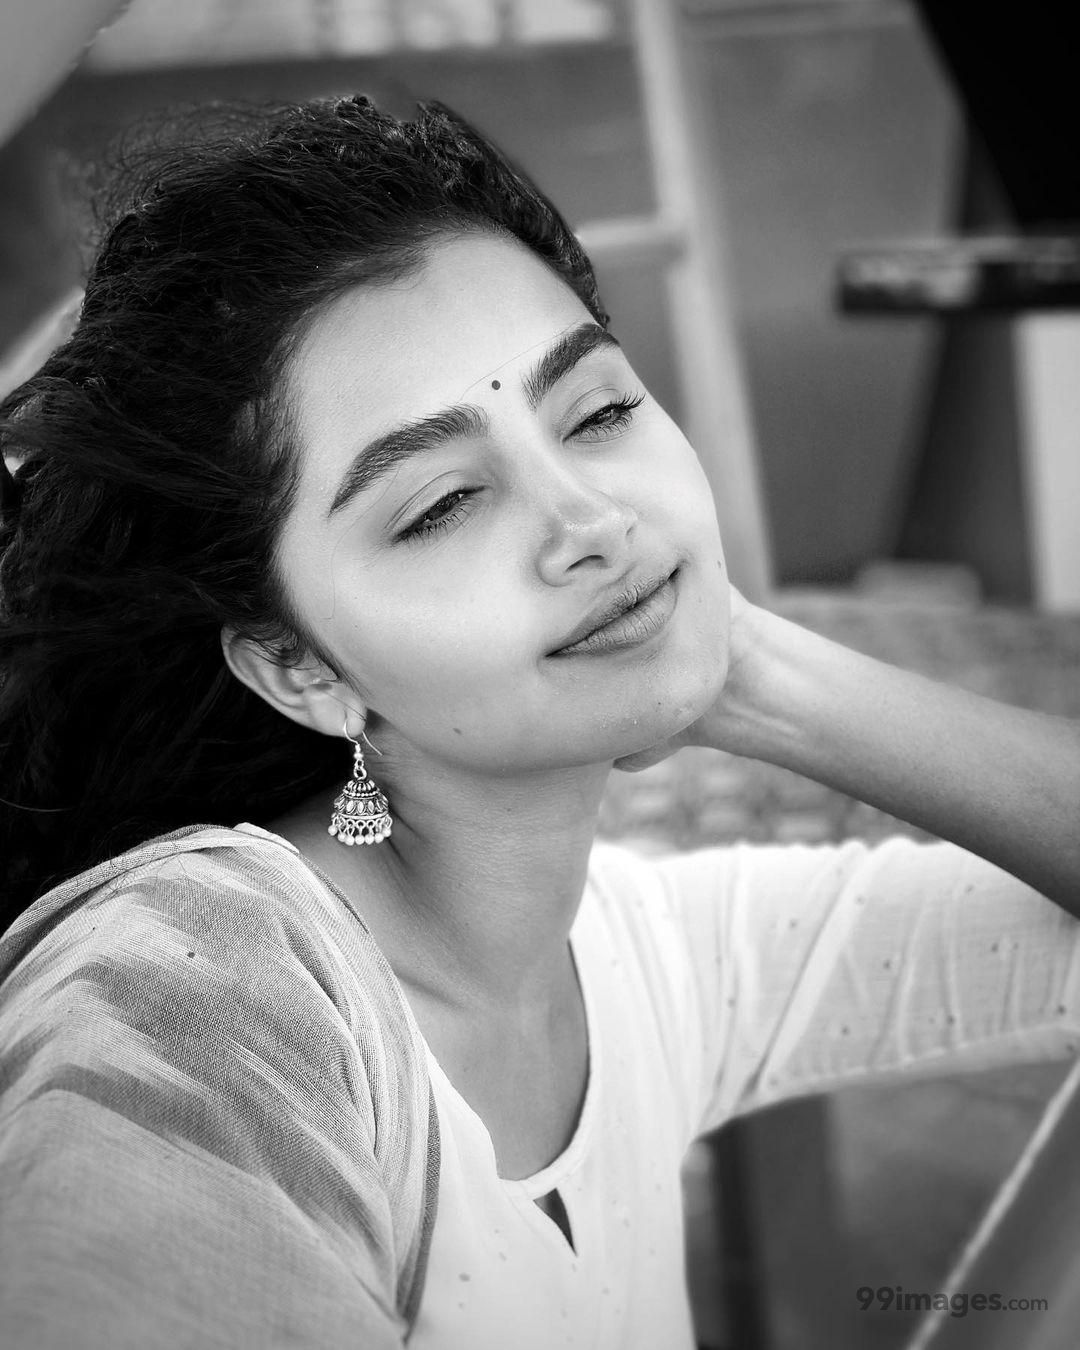 Anupama Parameswaran HD Wallpapers (Desktop Background / Android / iPhone) (1080p, 4k) (845409) - Anupama Parameswaran